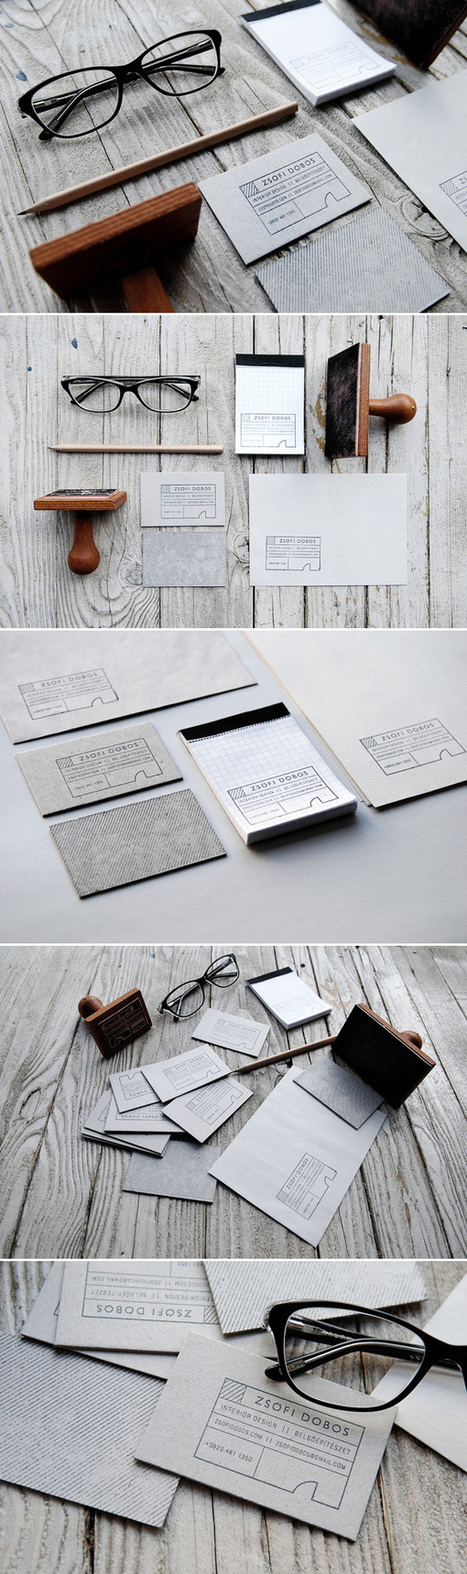 20 Inspiring Stationery Designs | Collecting About Design | Scoop.it